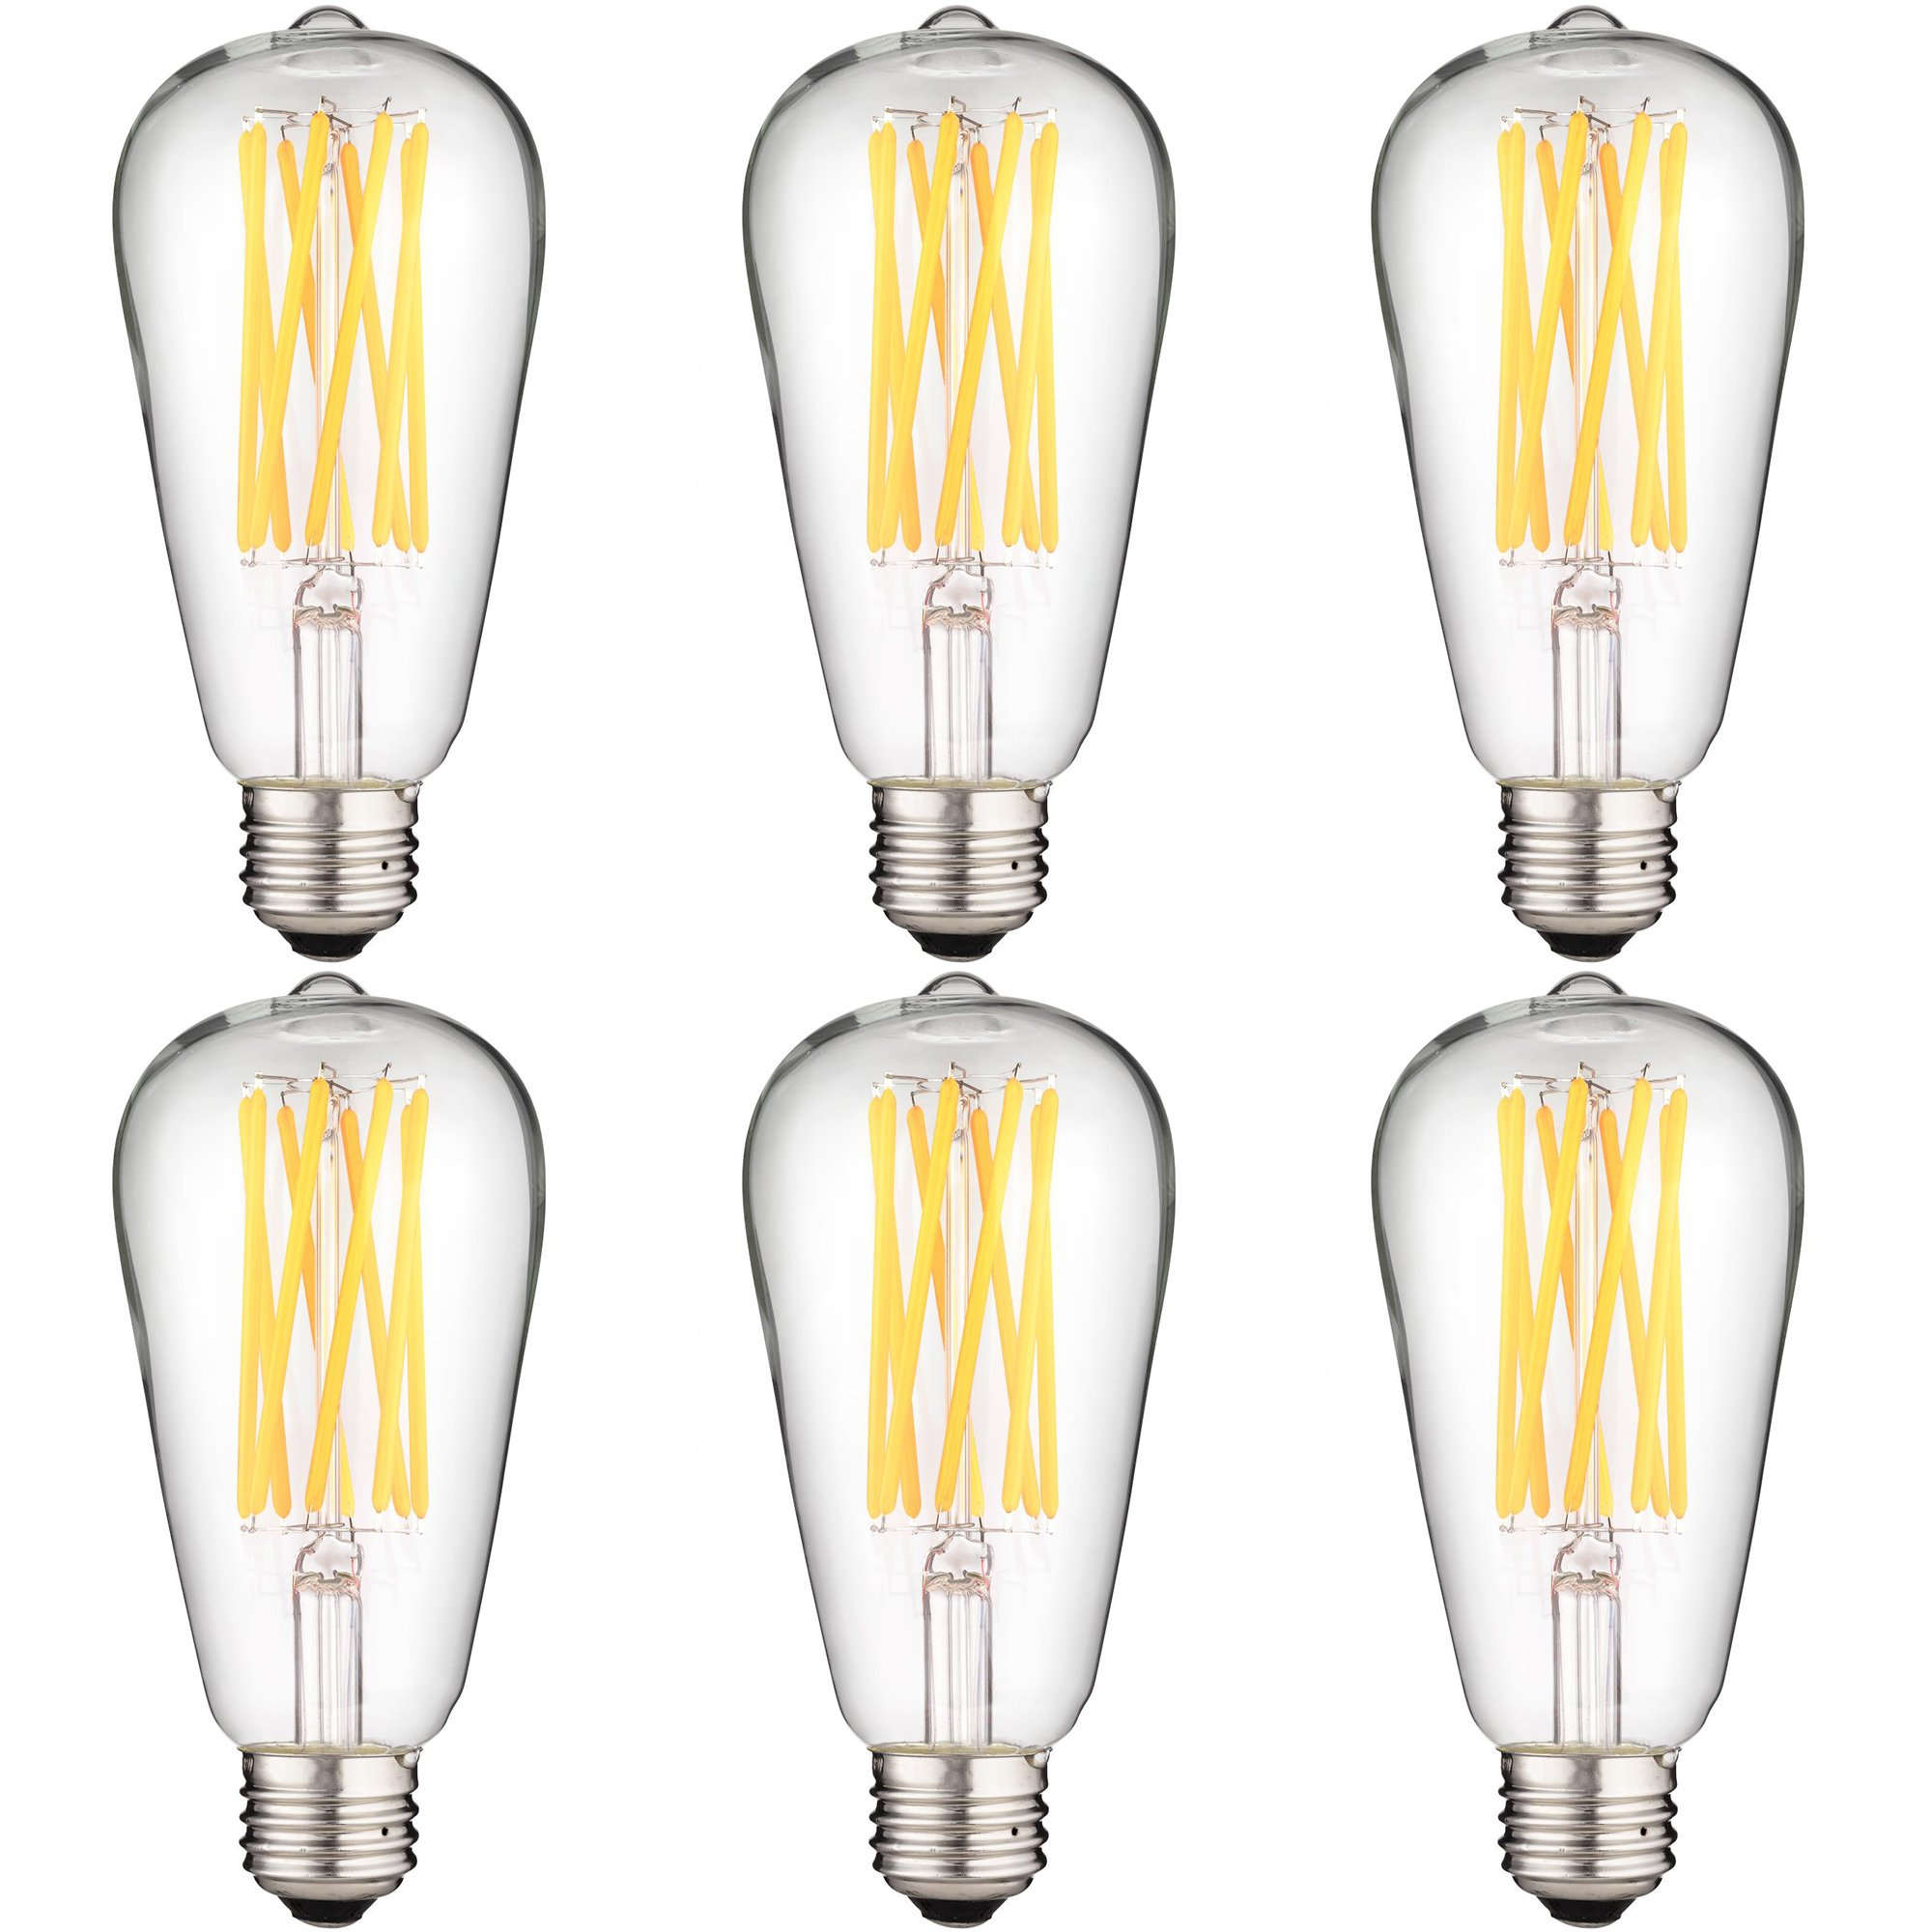 Sunlite - S19 LED Long Antique Style Bulb in Warm White, 8 Watts (60 Watt Equivalent), Dimmable, Medium Base, 15,000 Hours Lamp Life, 880 Lumens, Energy Efficient, Safety Rated, Indoor Use - 6 Pack